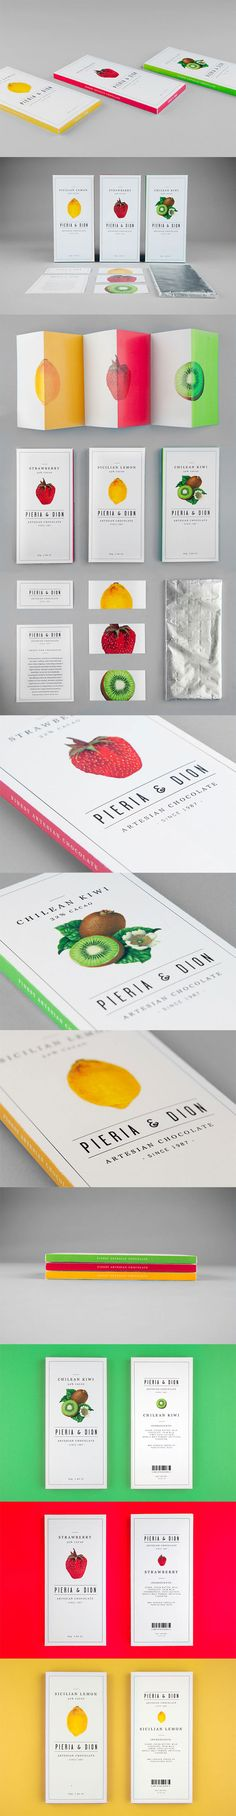 Student Spotlight: Pieria & Dion Packaging design for fictional artesian chocolate company Pieria & Dion. An assignment from my Graphic Design class at the School of Visual Arts. Graphic Design and Art Direction: Leo Porto. Web Design, Design Typo, Graphic Design Branding, Label Design, Book Design, Layout Design, Print Design, Creative Design, Corporate Design